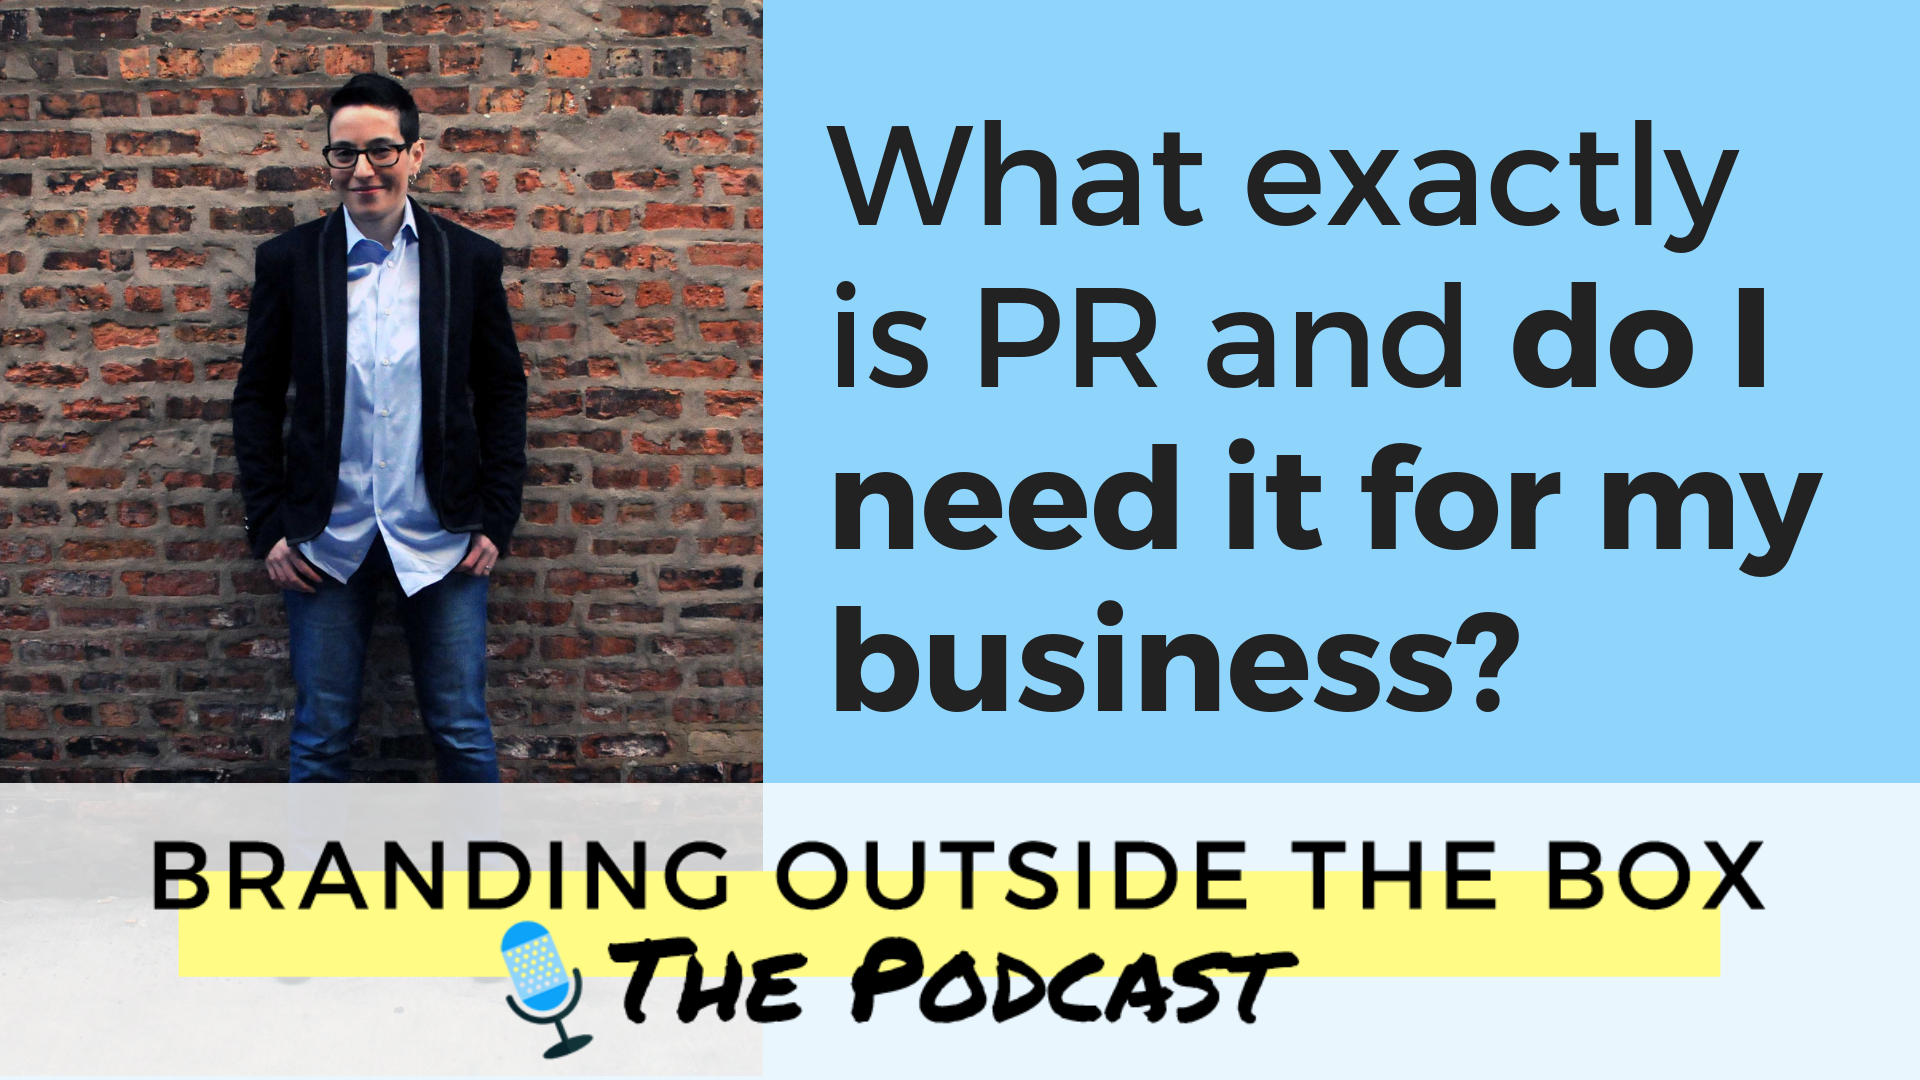 What exactly is PR and why do I need it for my business?